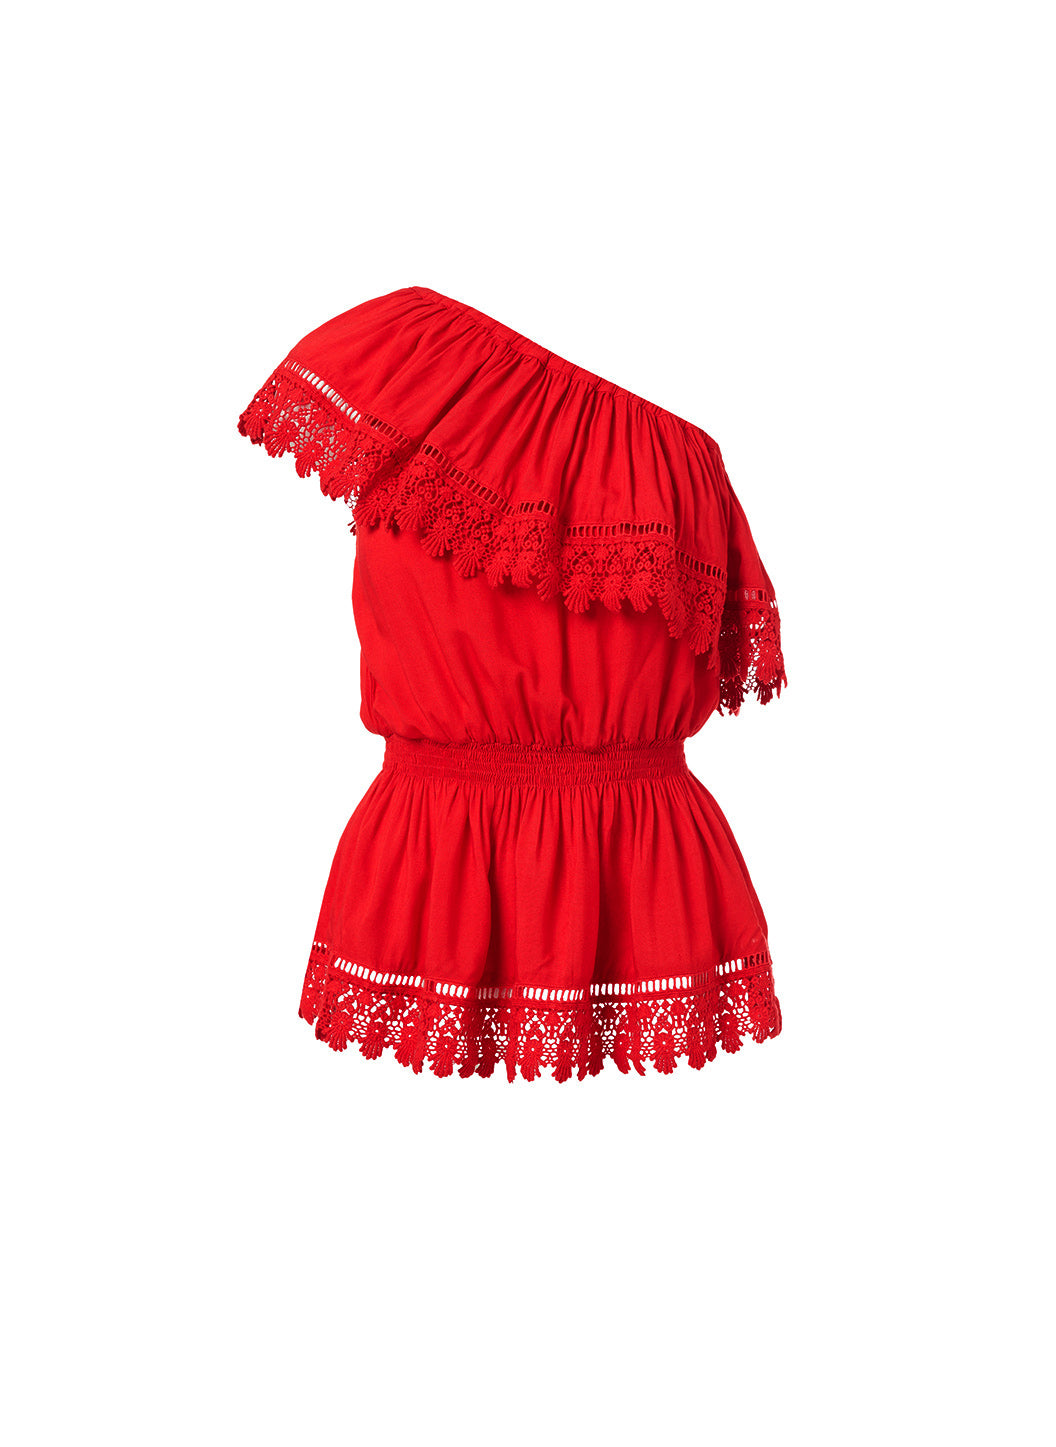 Joanna Red One Shoulder Embroidered Frill Top - Melissa Odabash Tops & Bottoms